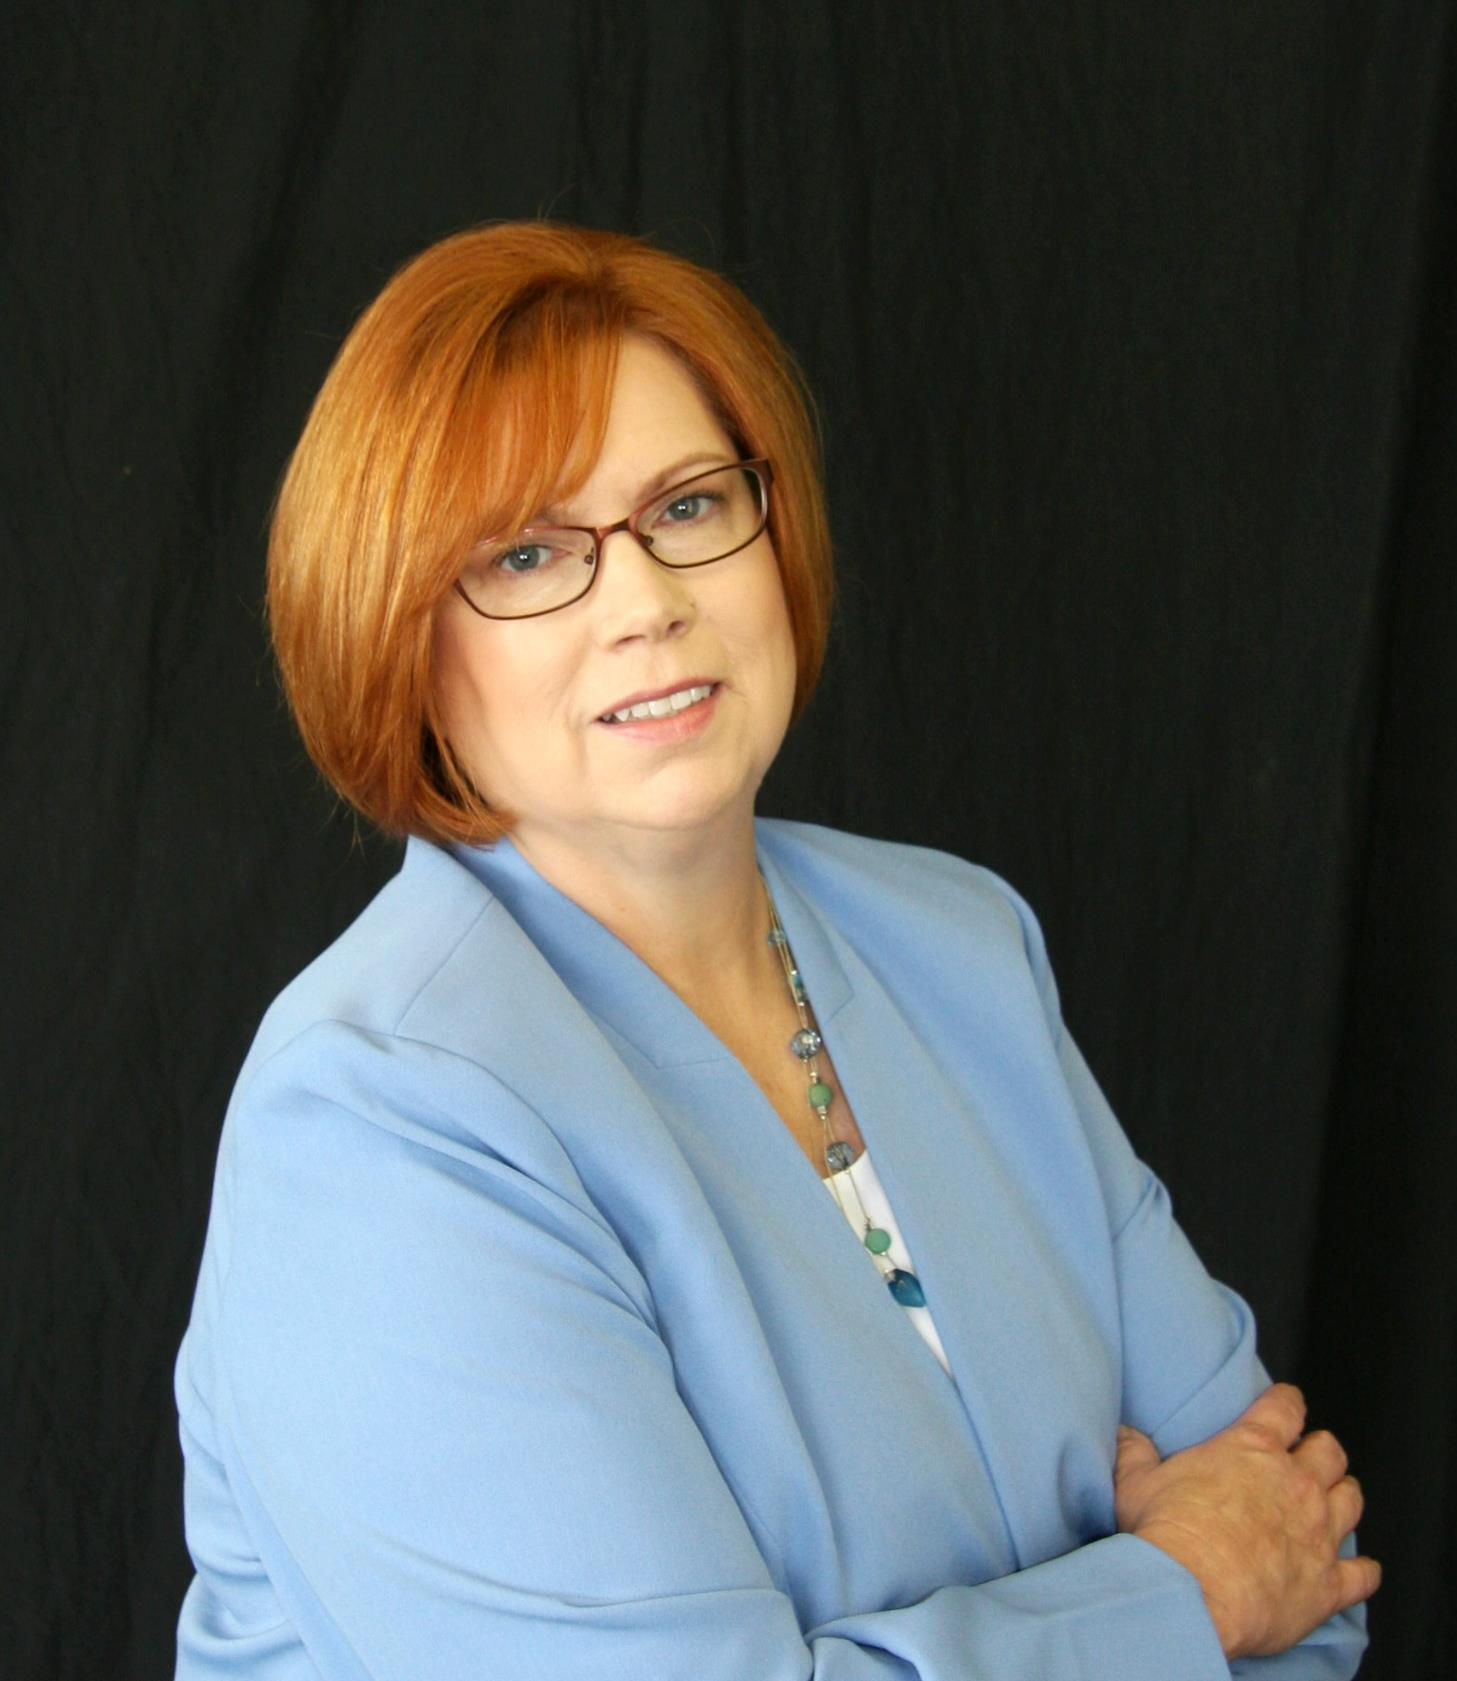 Barbara Garrett is a licensed real estate agent in Festus MO